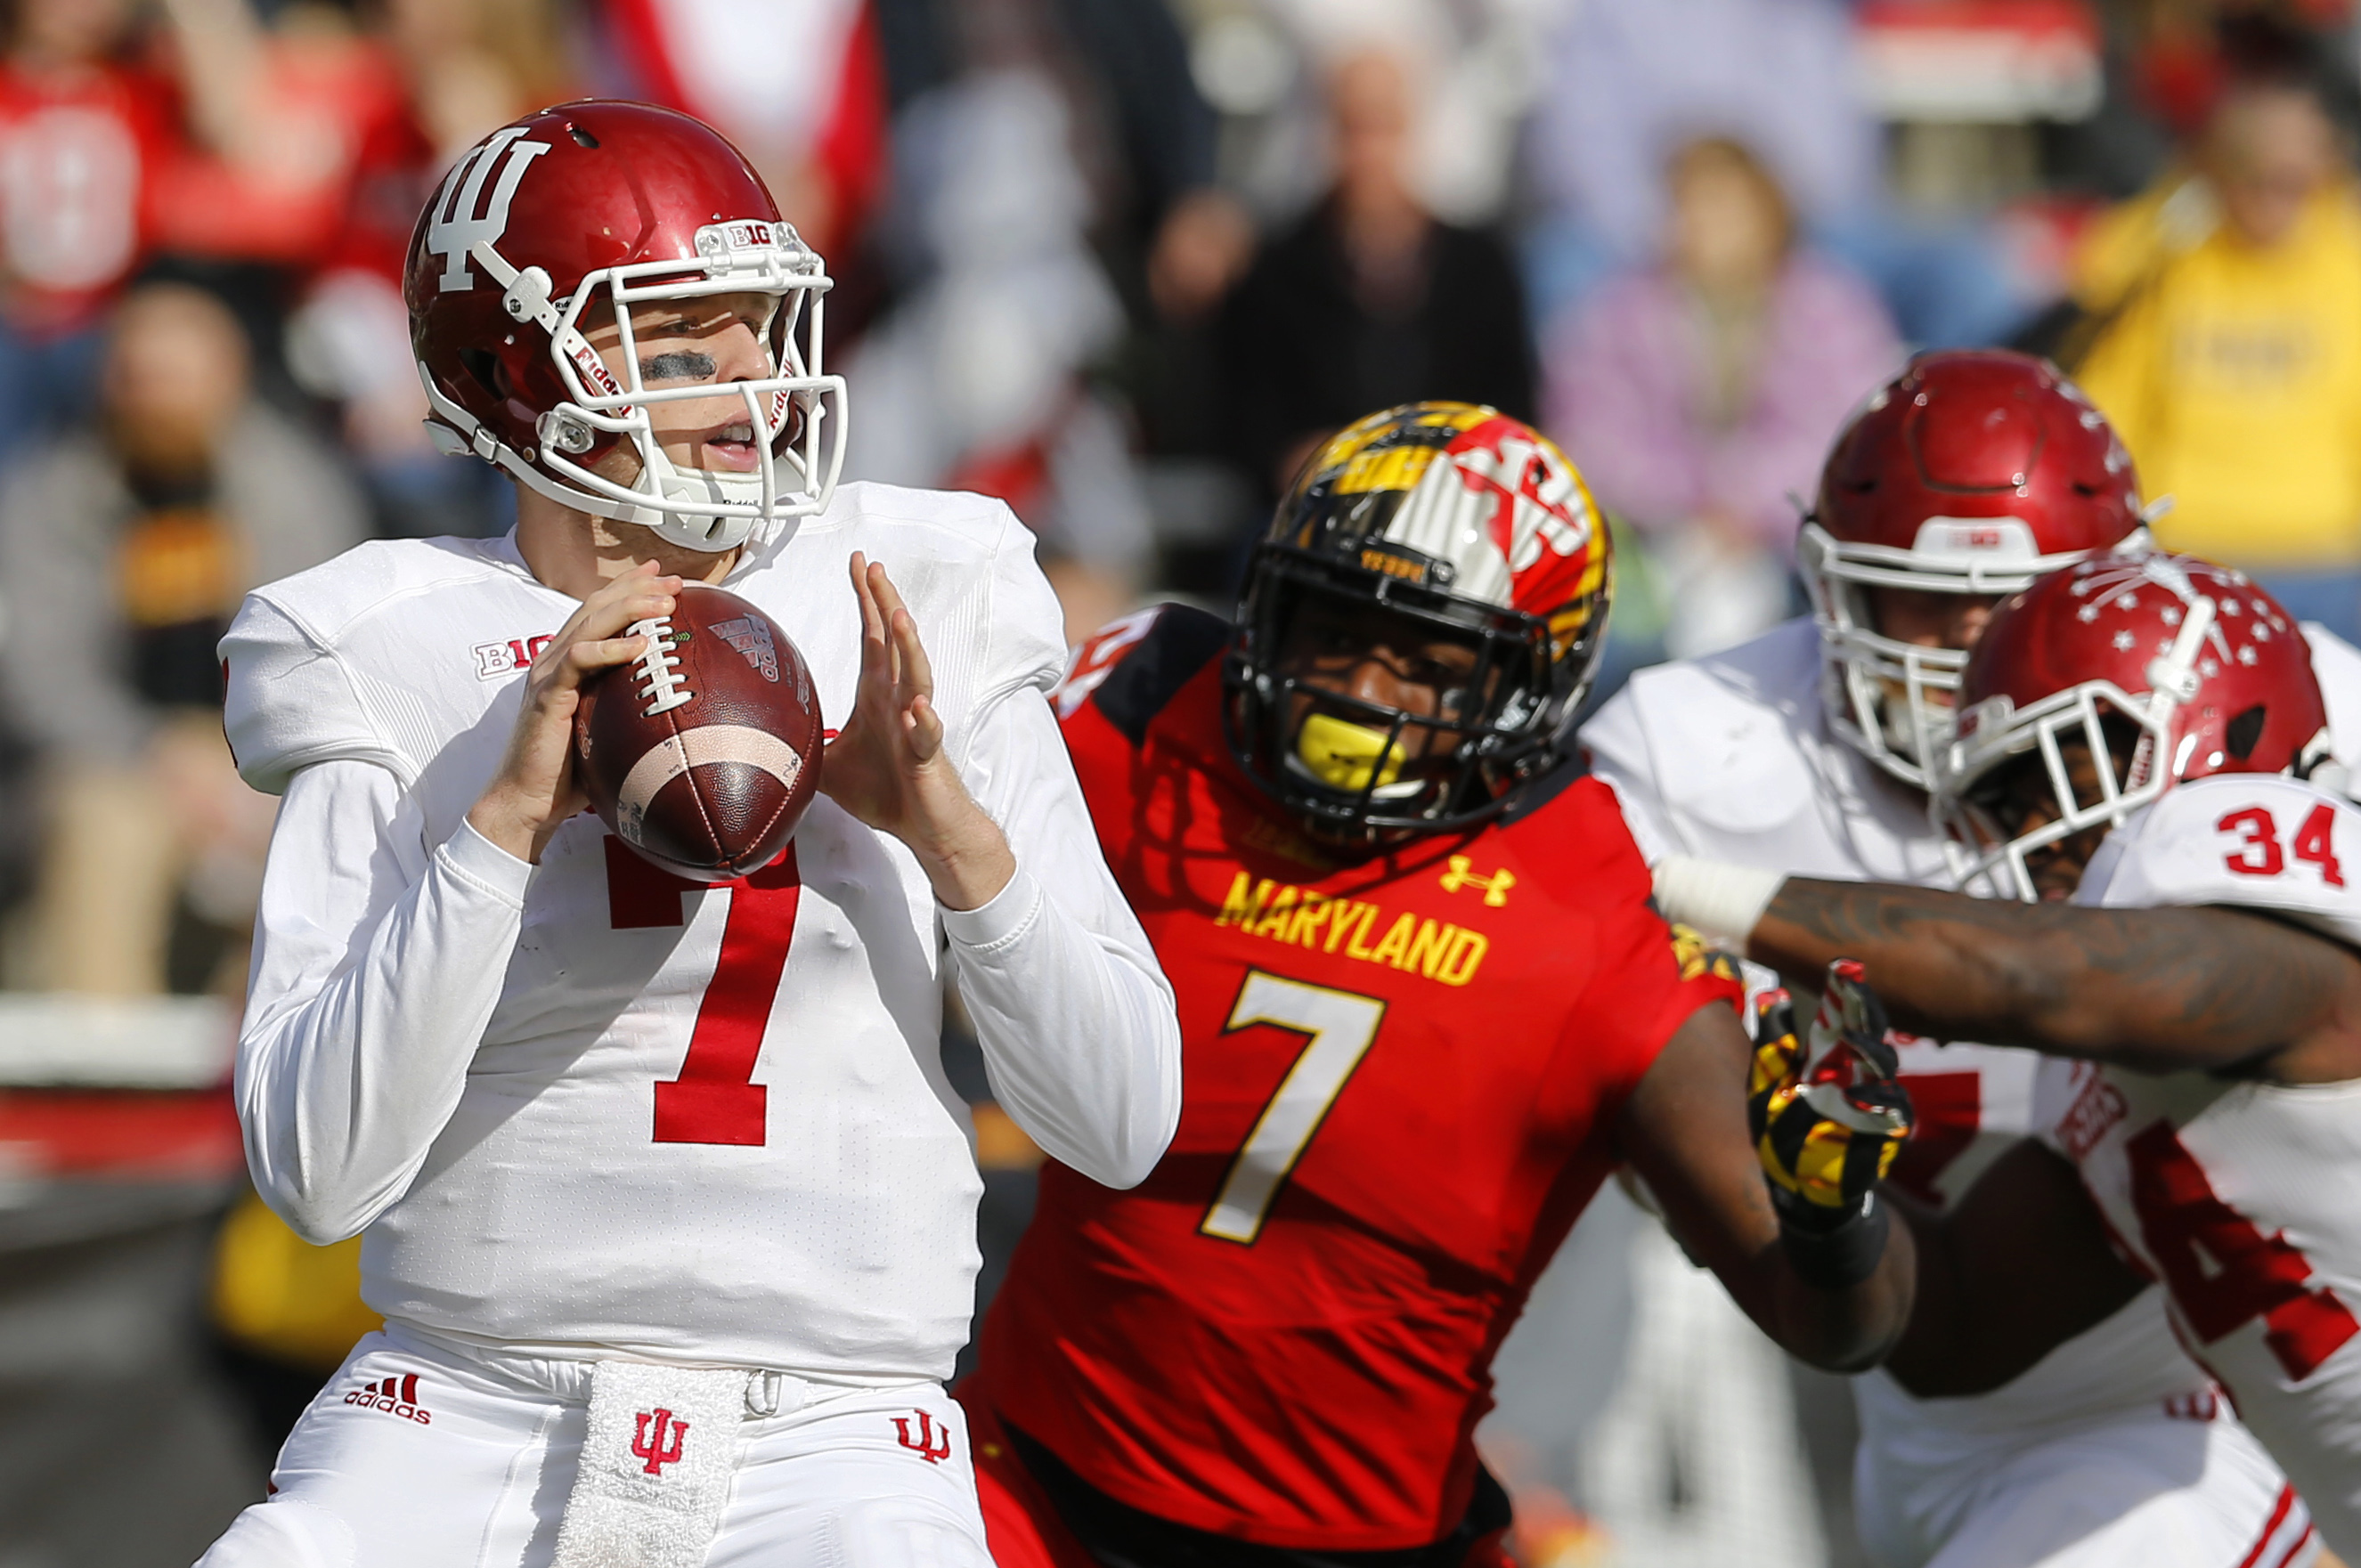 Indiana quarterback Nate Sudfeld, left, looks for a receiver as he is pressured by Maryland defensive lineman Yannick Ngakoue (7) in the first half of an NCAA college football game, Saturday, Nov. 21, 2015, in College Park, Md. (AP Photo/Patrick Semansky)